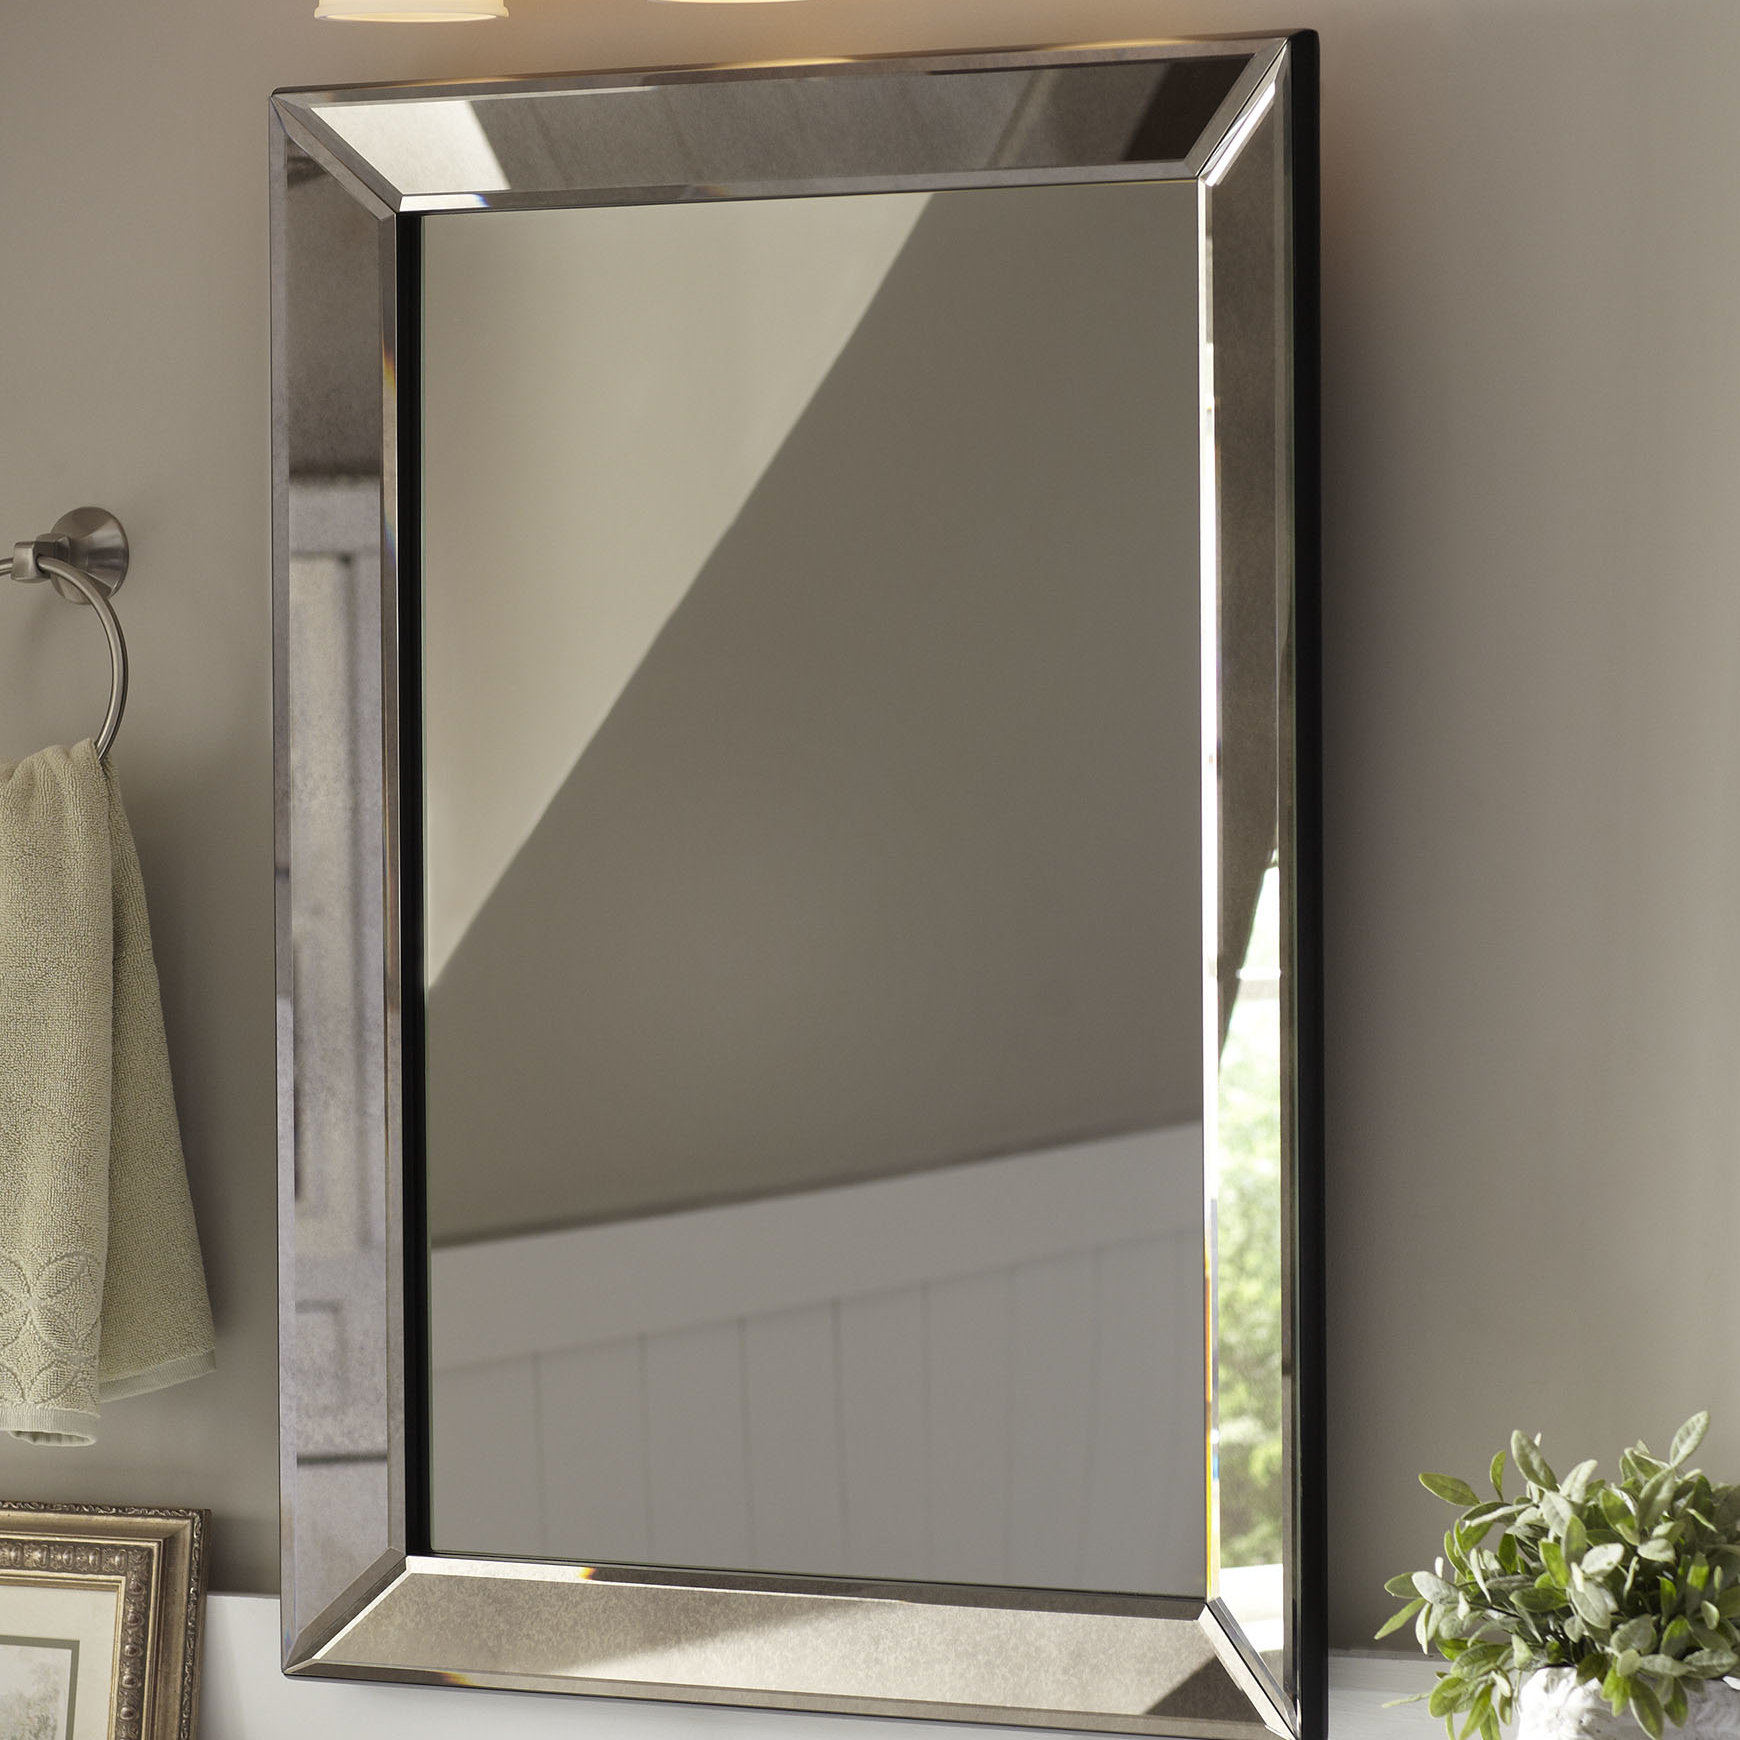 Farmhouse Mirrors | Birch Lane Throughout Beaded Accent Wall Mirrors (View 10 of 30)